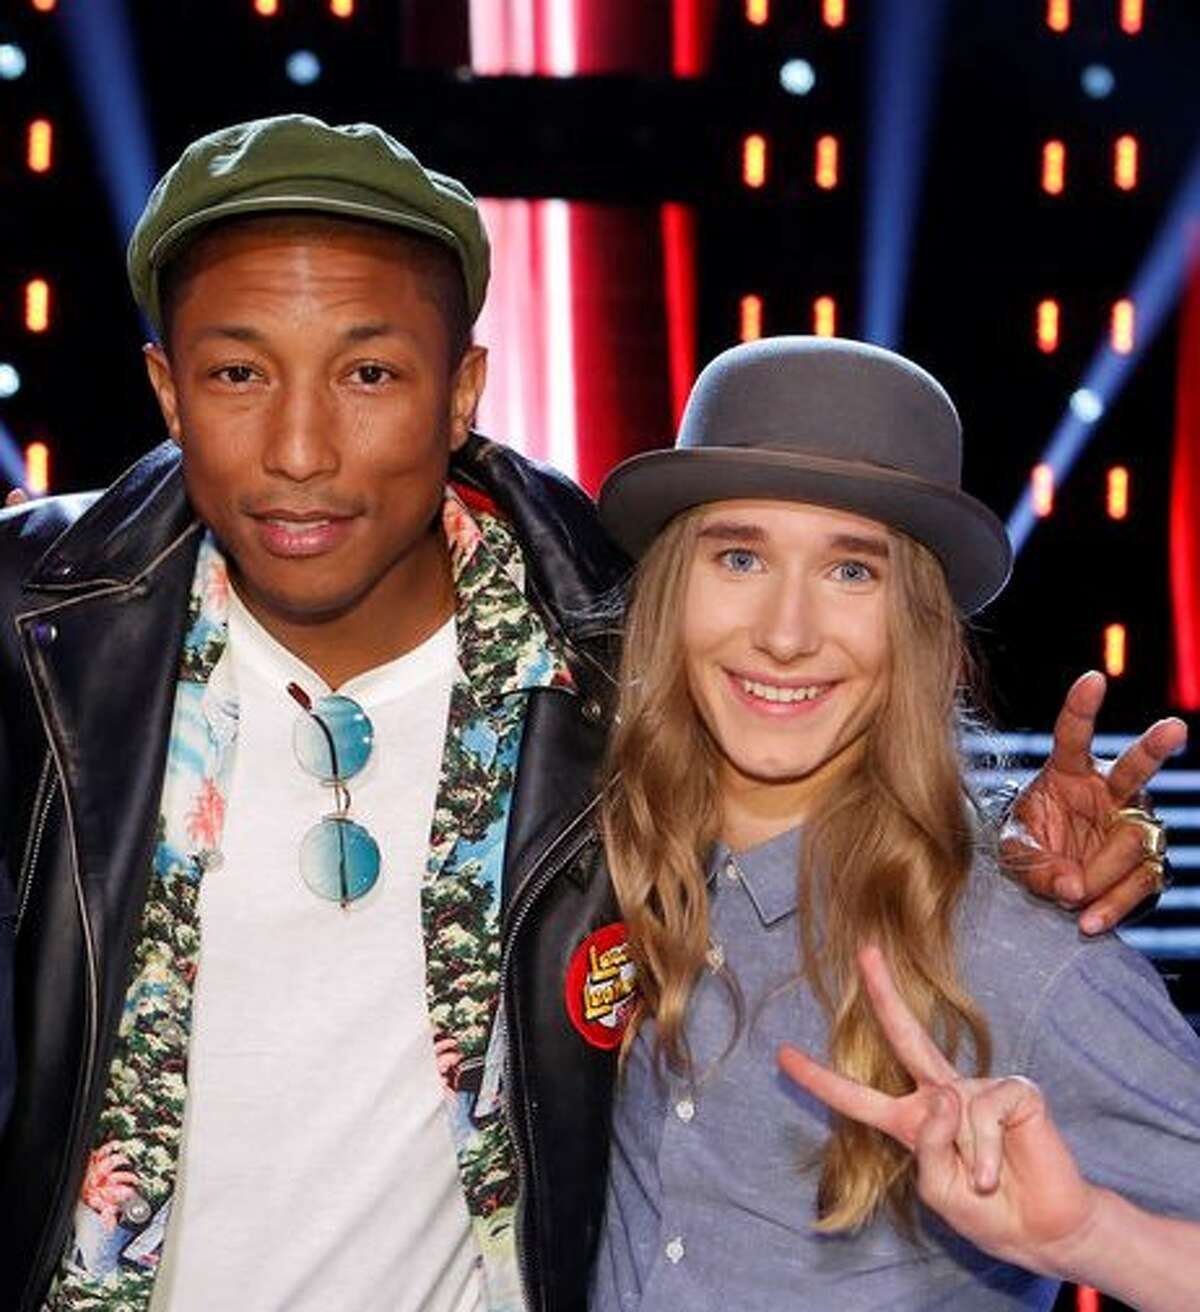 Sawyer Fredericks with his coach, Pharrell Williams (photo from nbc.com)